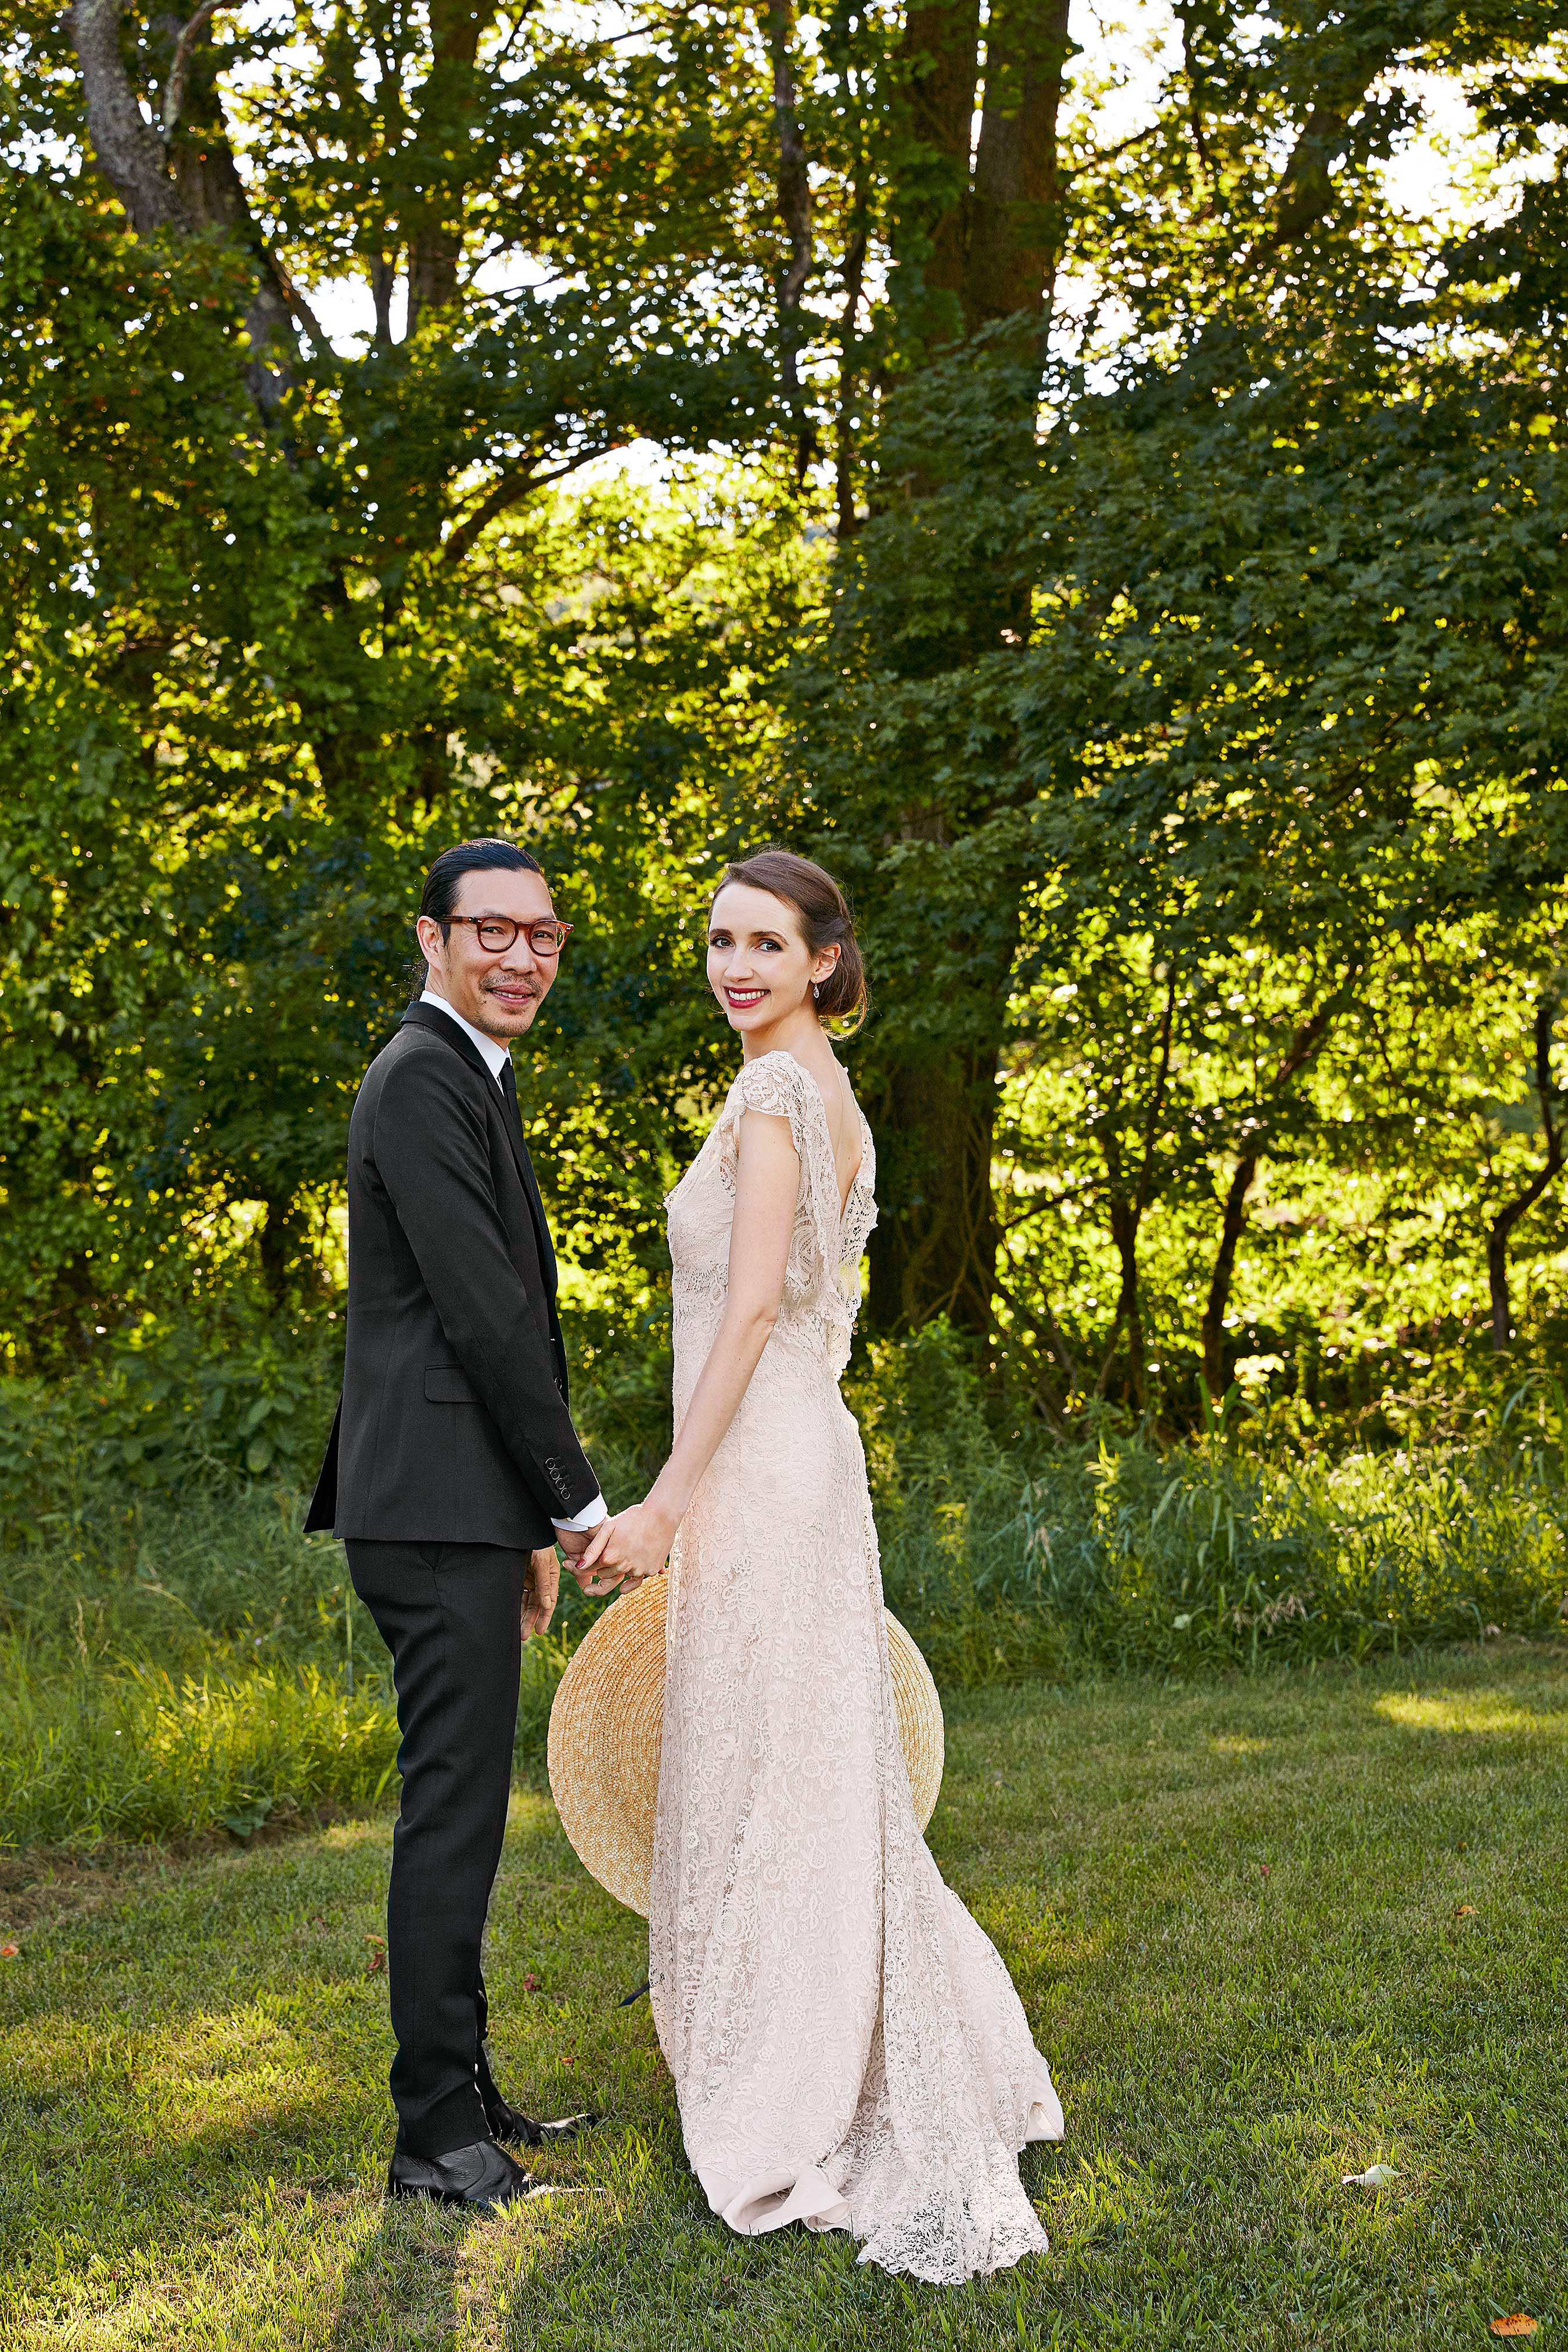 avril quy wedding new york couple trees green